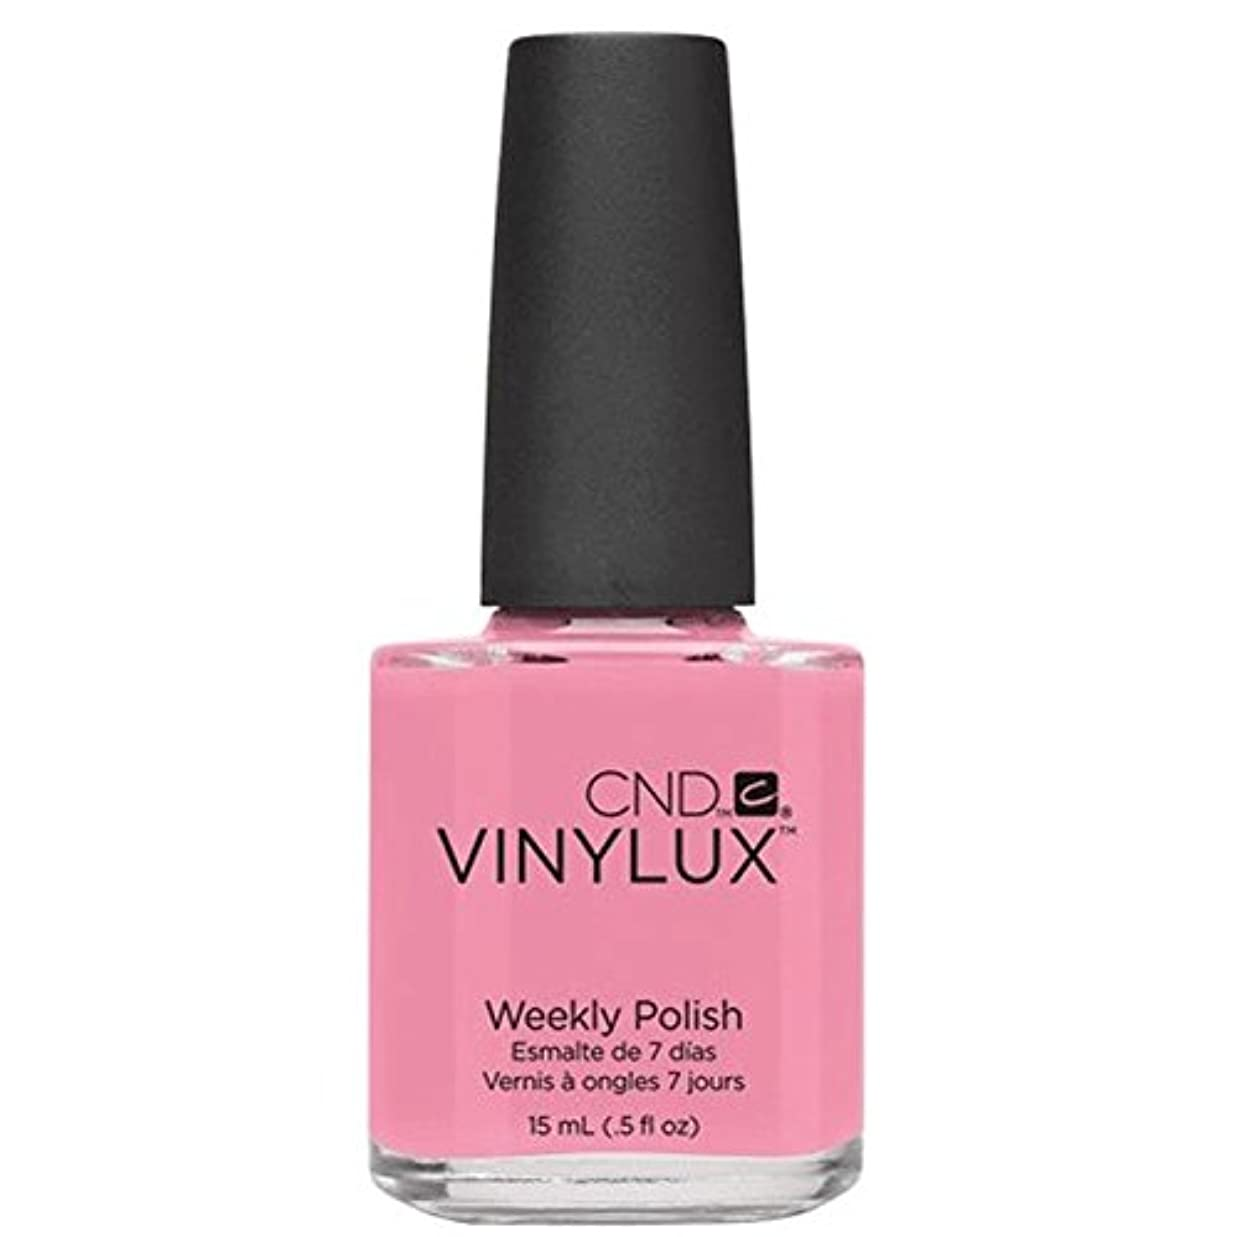 混乱座標後ろにCND Vinylux Manicure Lacquer _  Stawberry Smoothie #150_15ml (0.5oz)